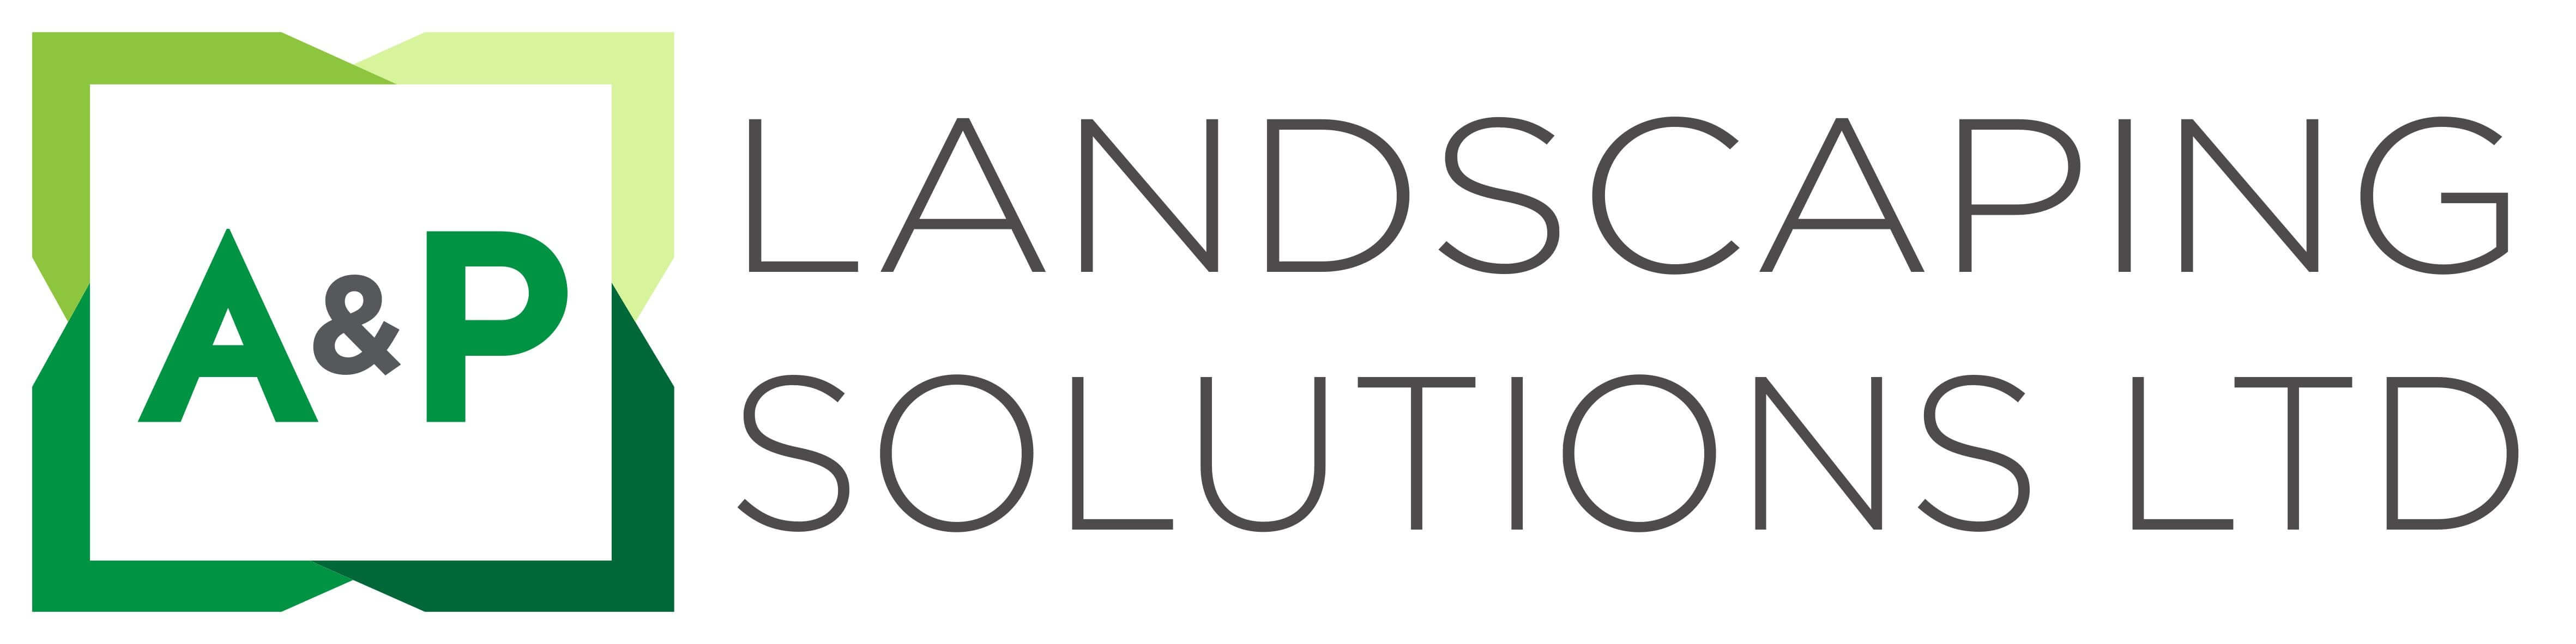 A & P Landscaping Solutions Logo